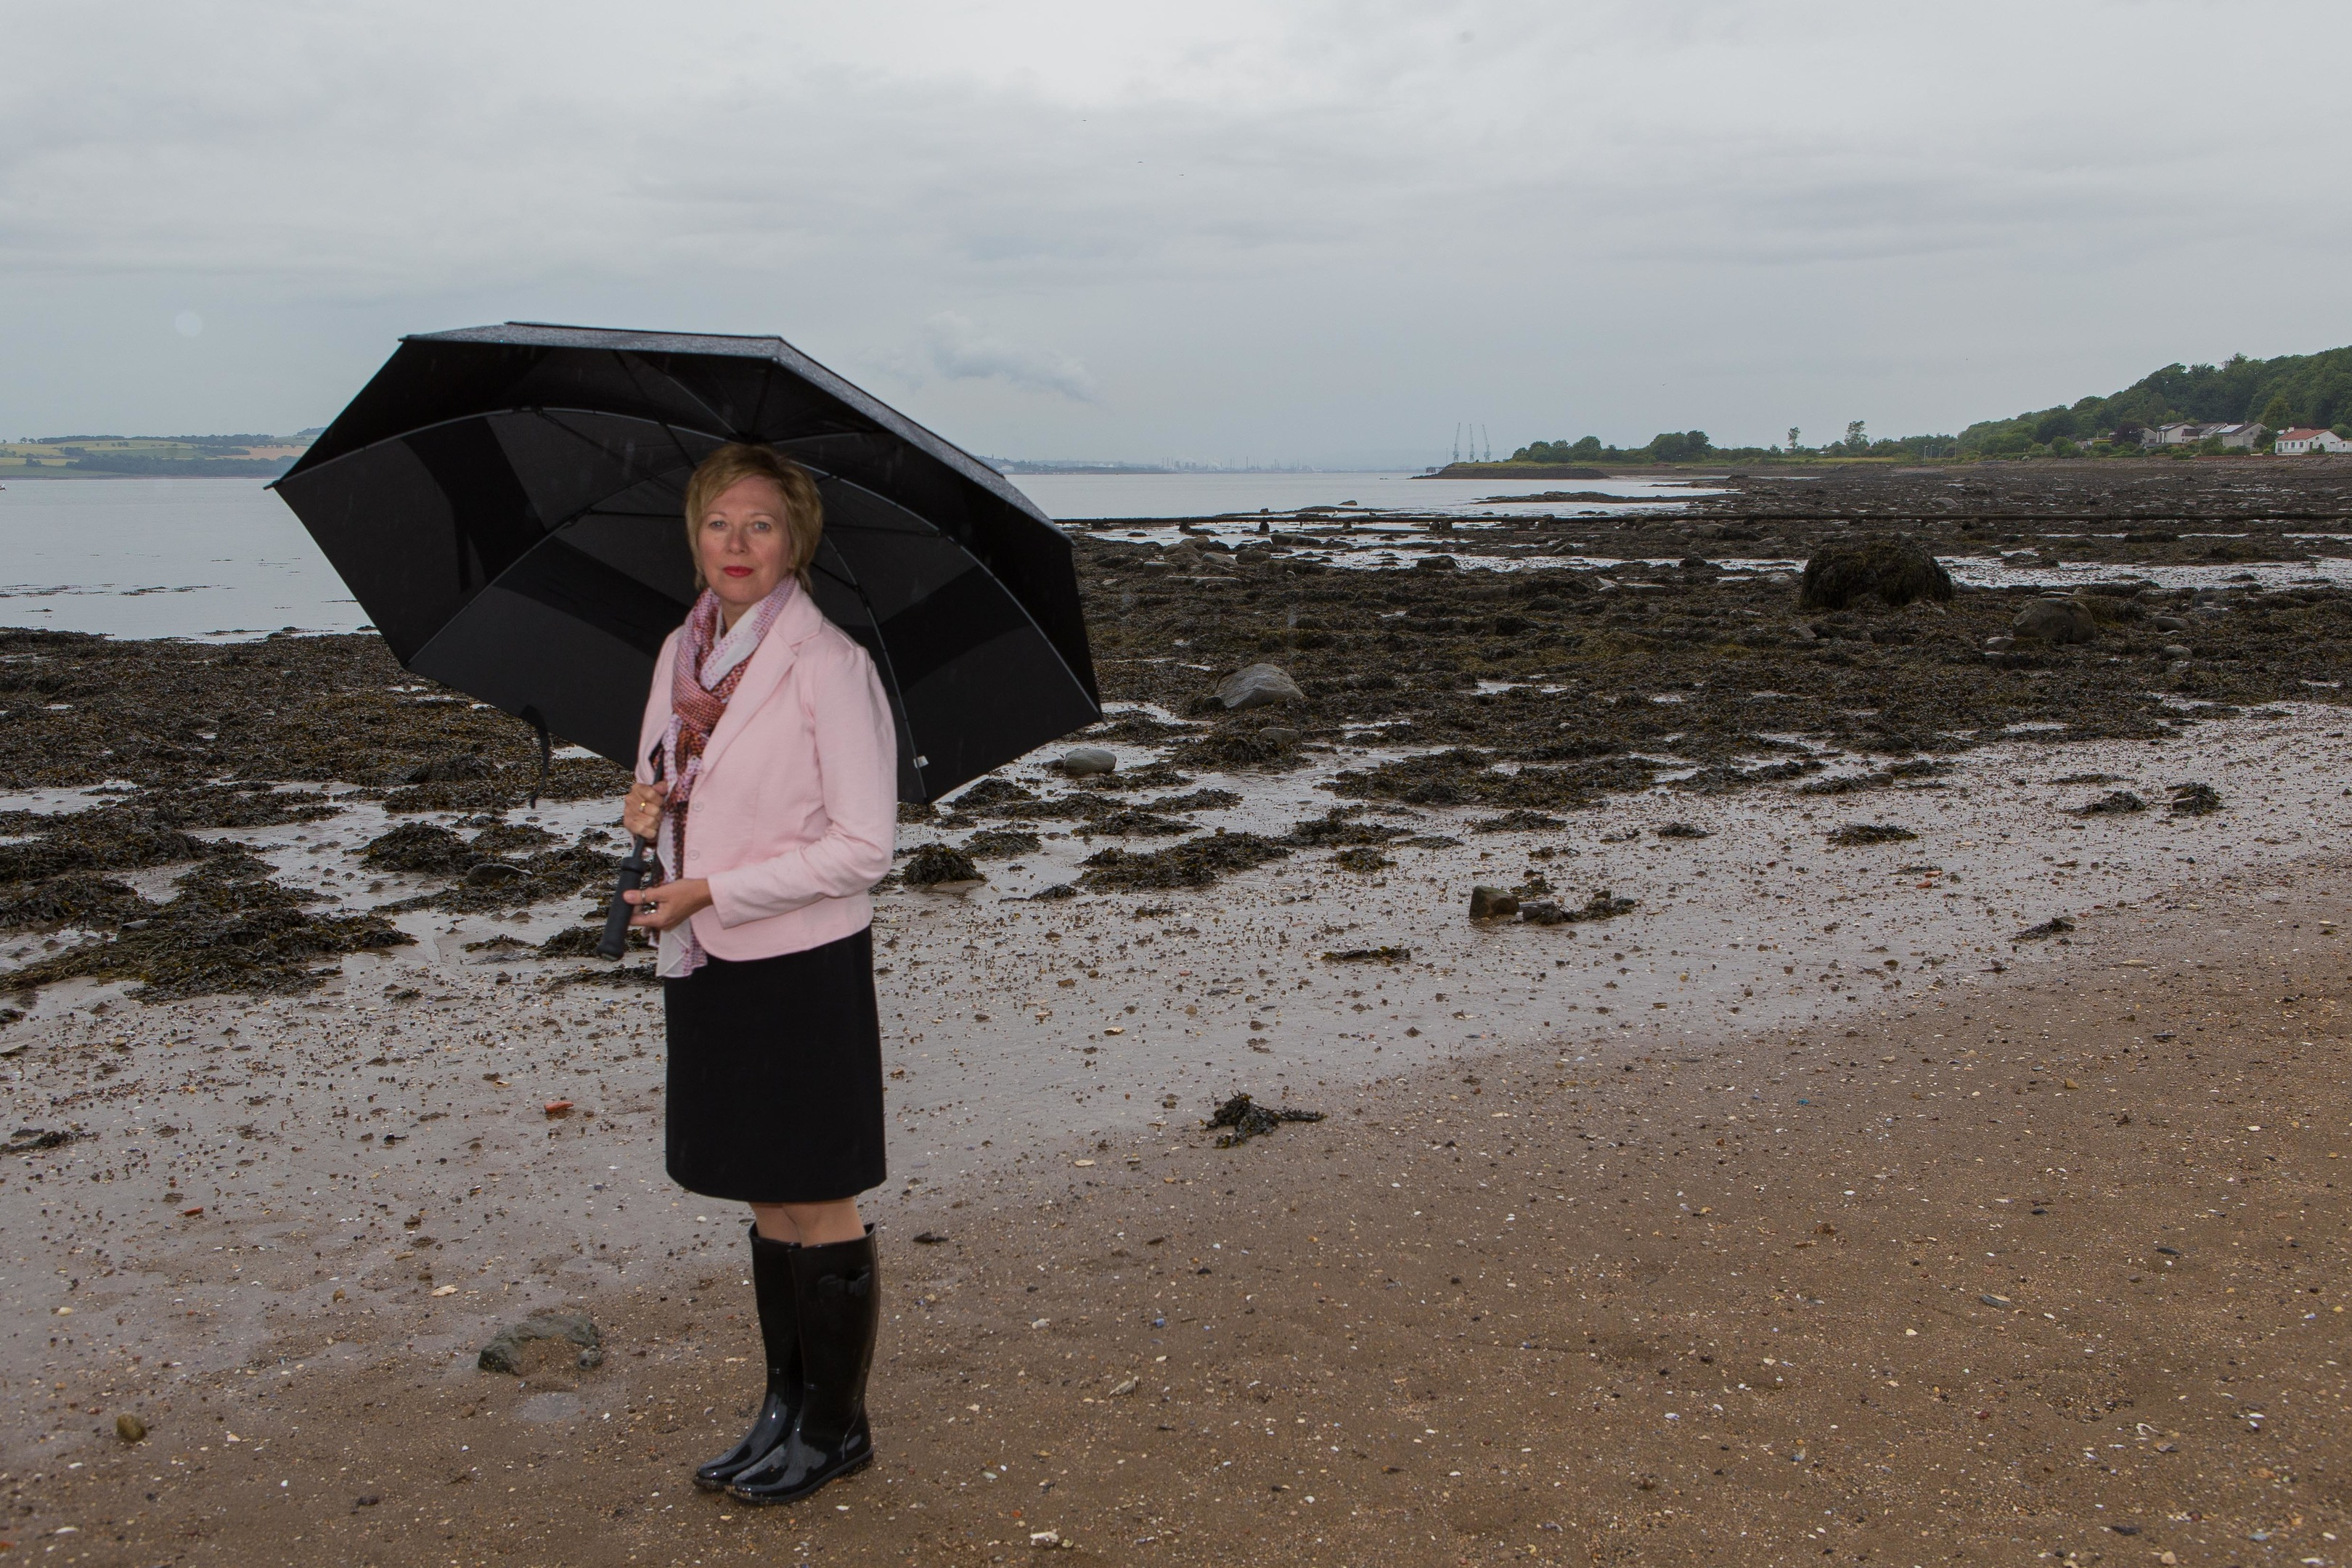 Councillor Lesley Laird overlooking the Firth of Forth, which energy firms had considered using as a location for controversial UCG (Underground Coal Gasification).